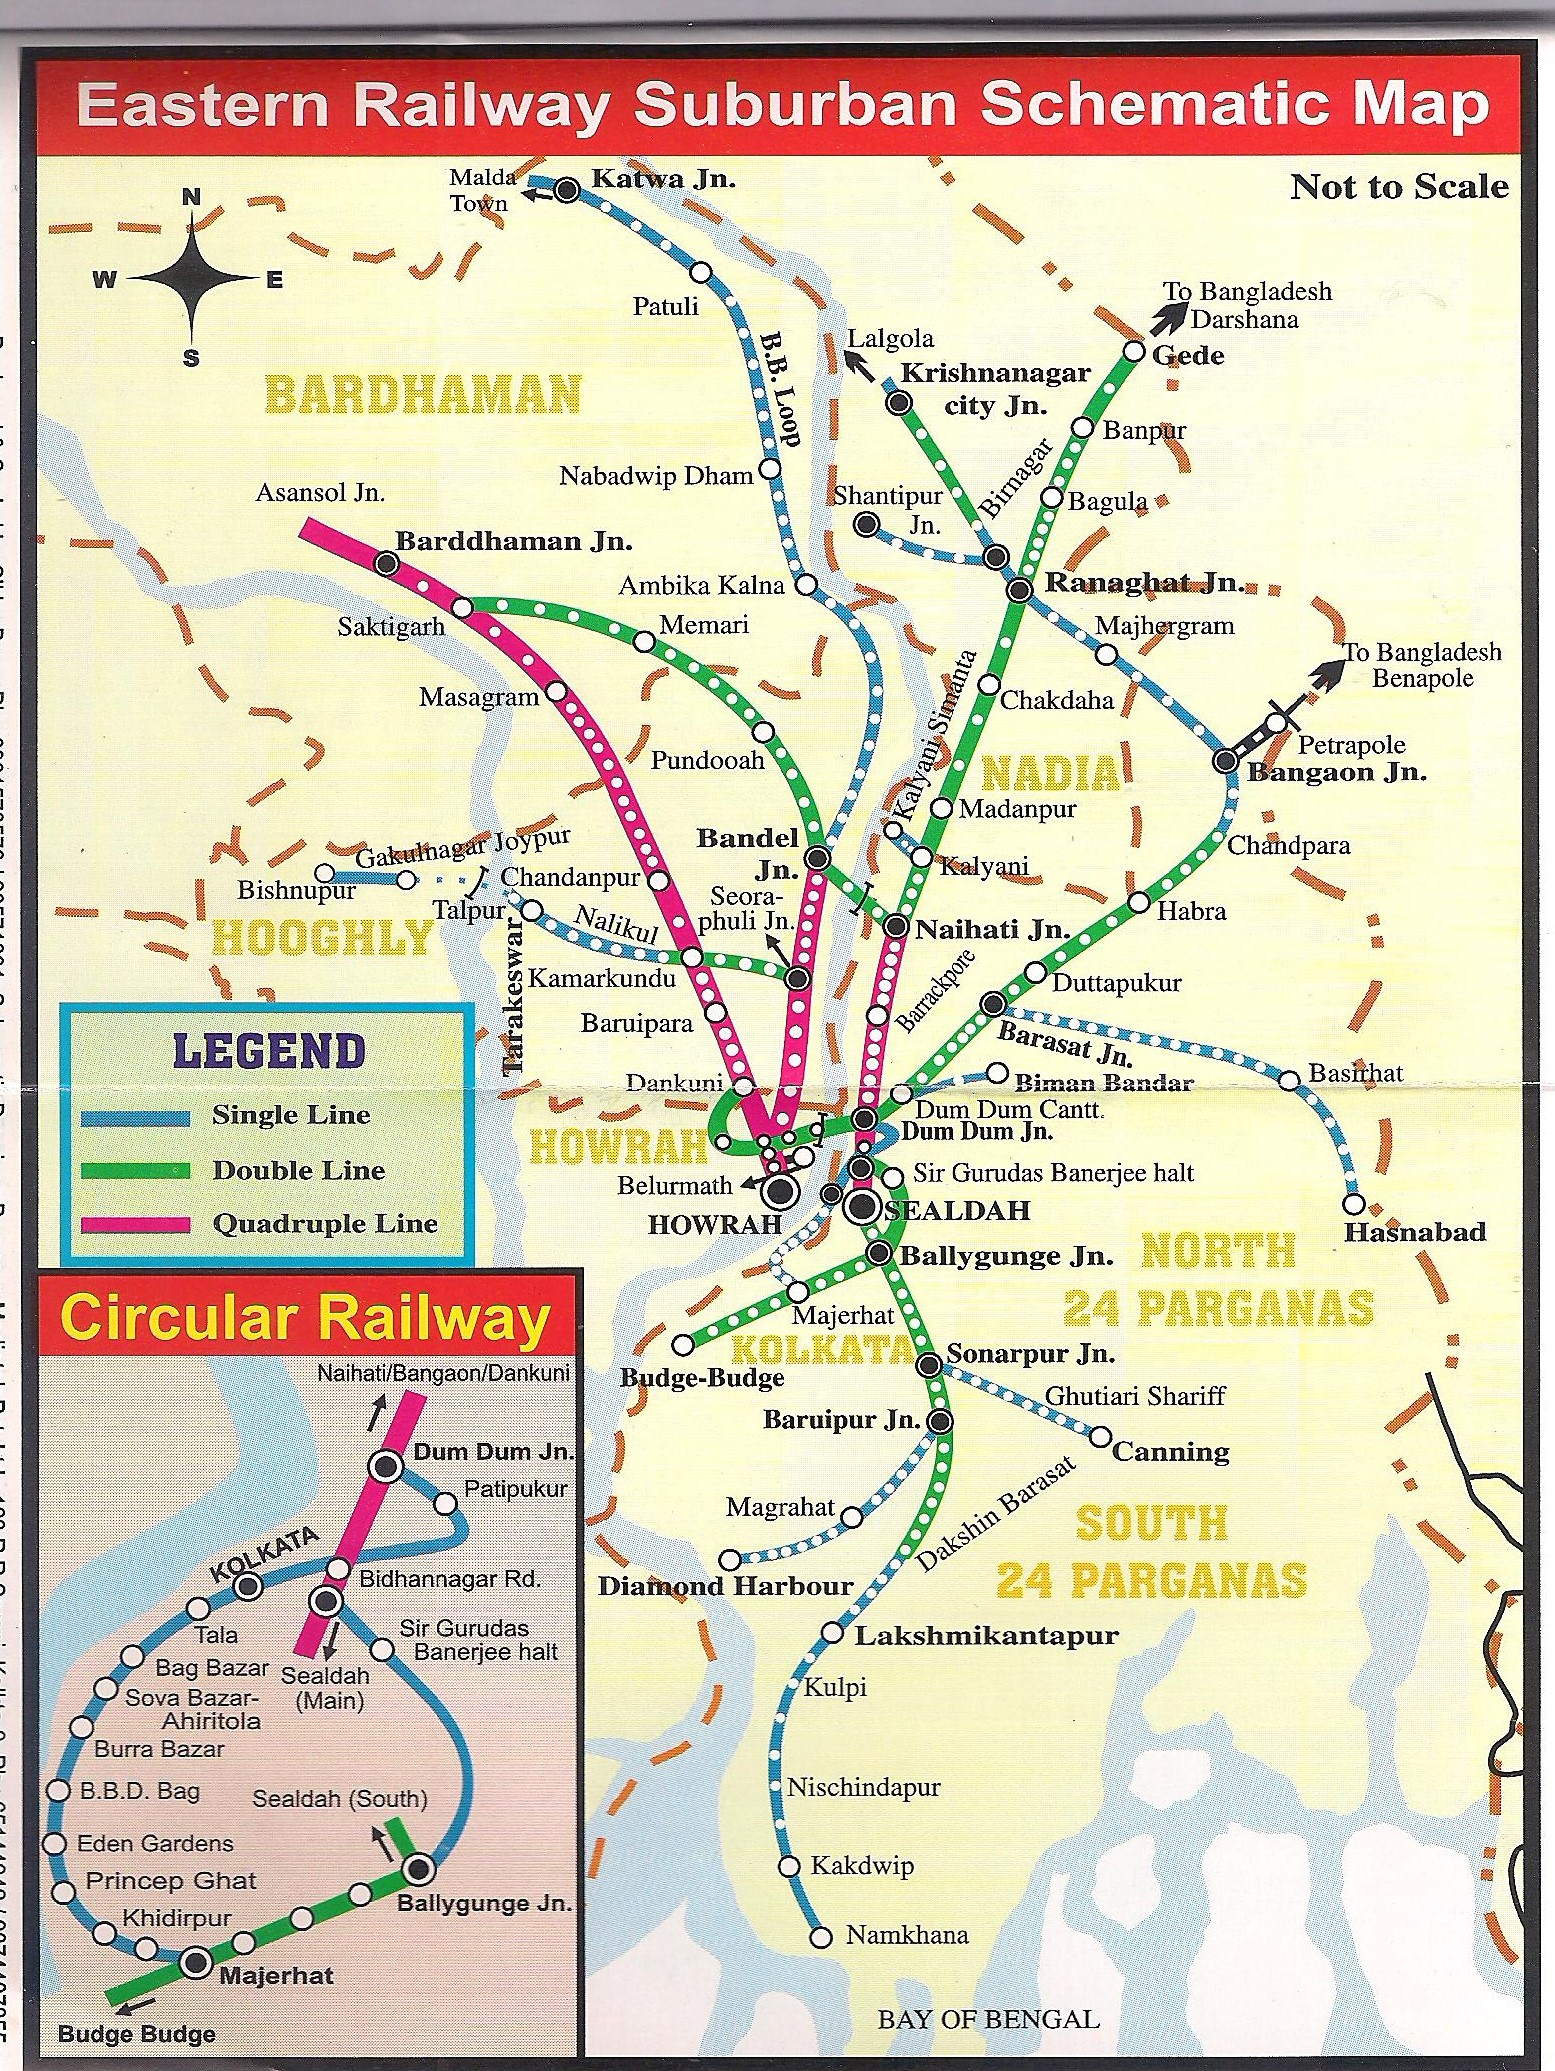 Howrah railway station map - Thepix.info - 1244.3KB